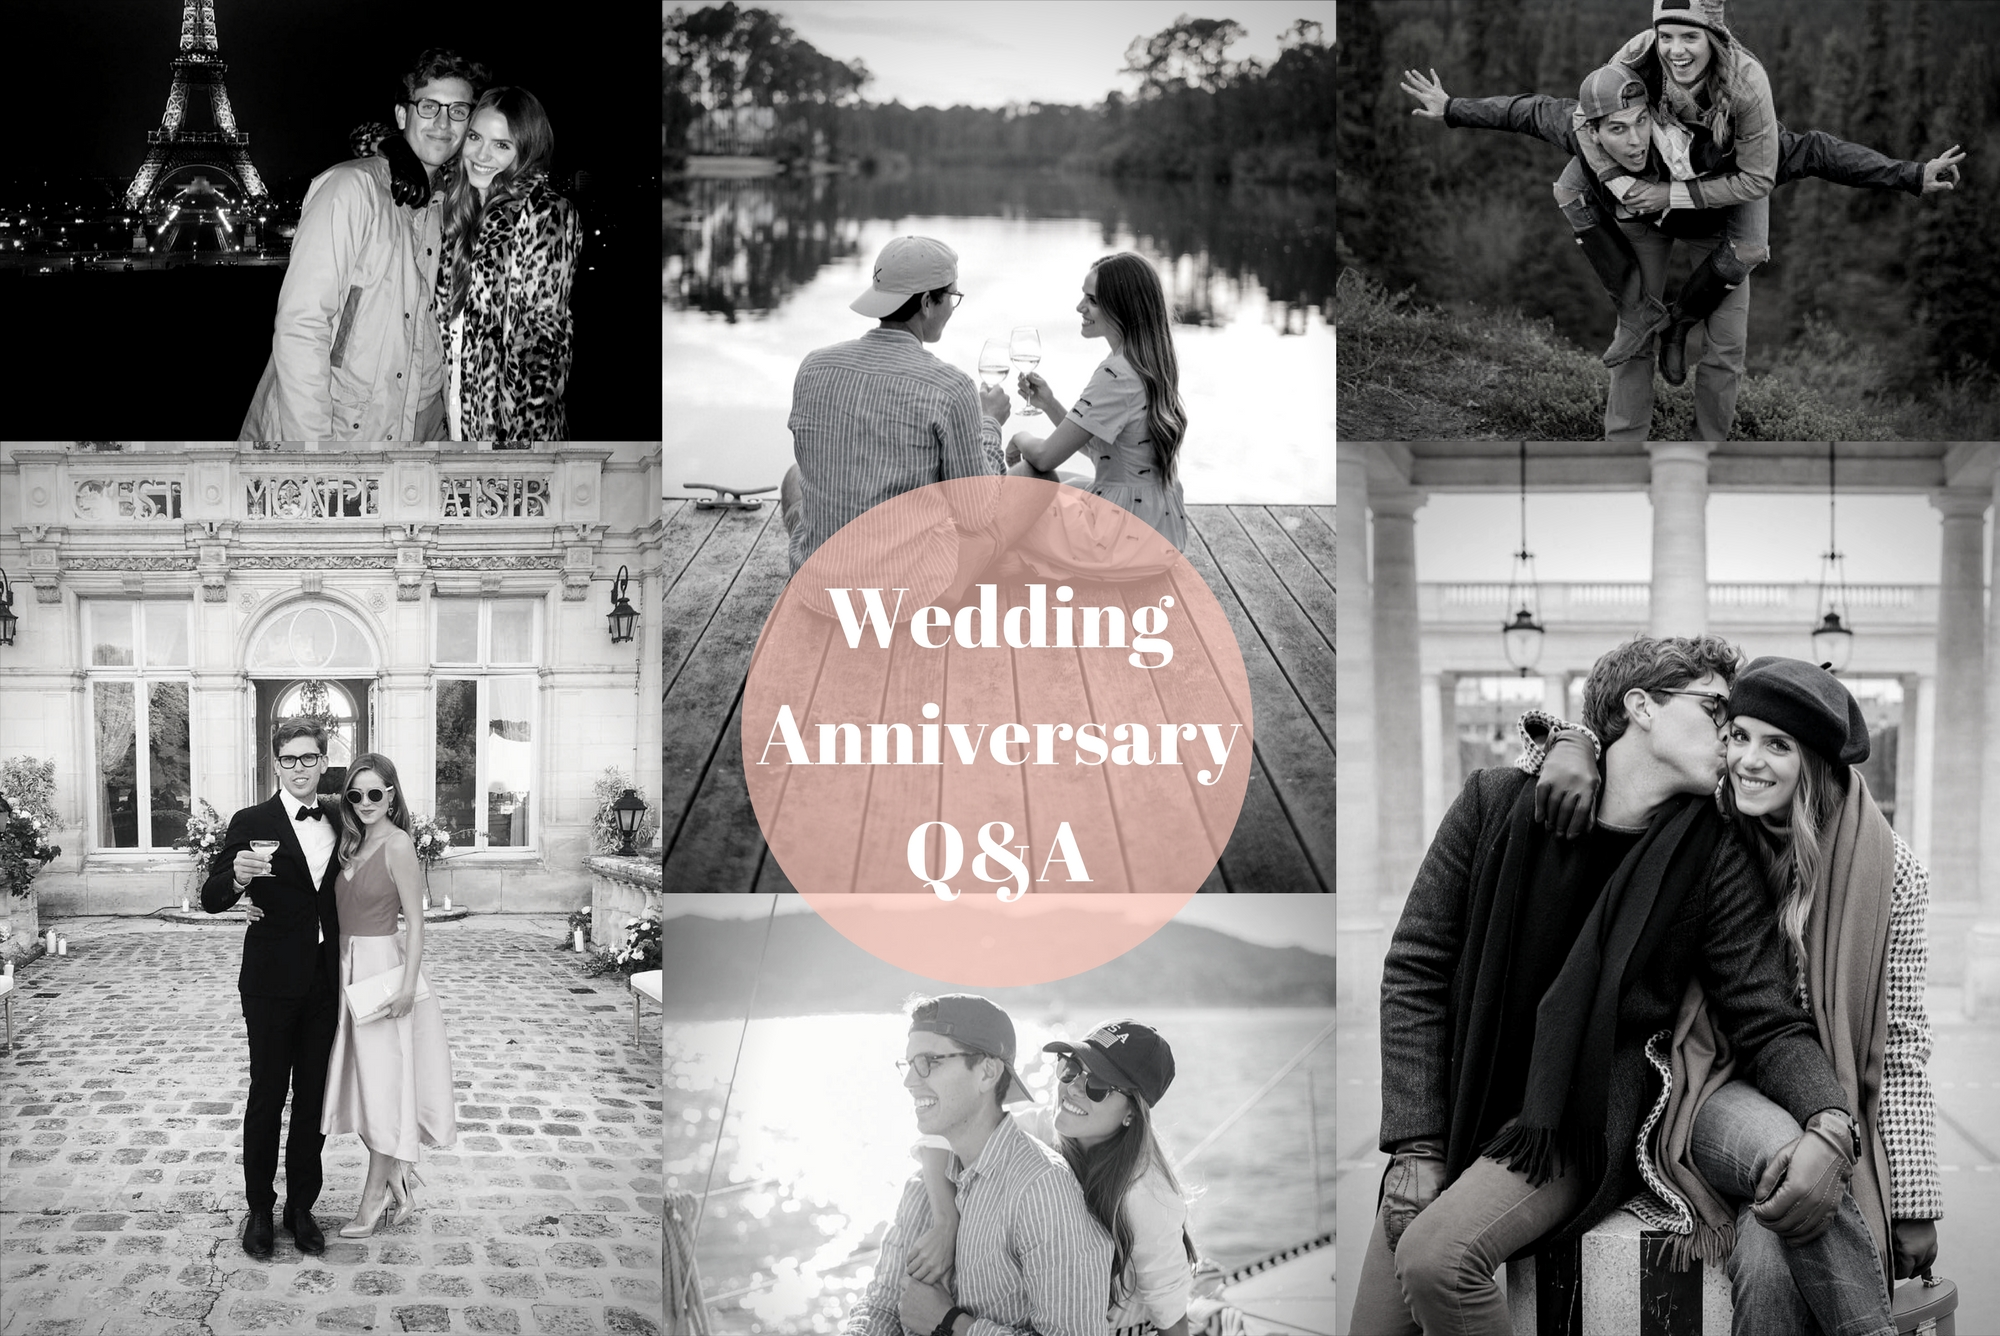 Wedding AnniversaryQ&A